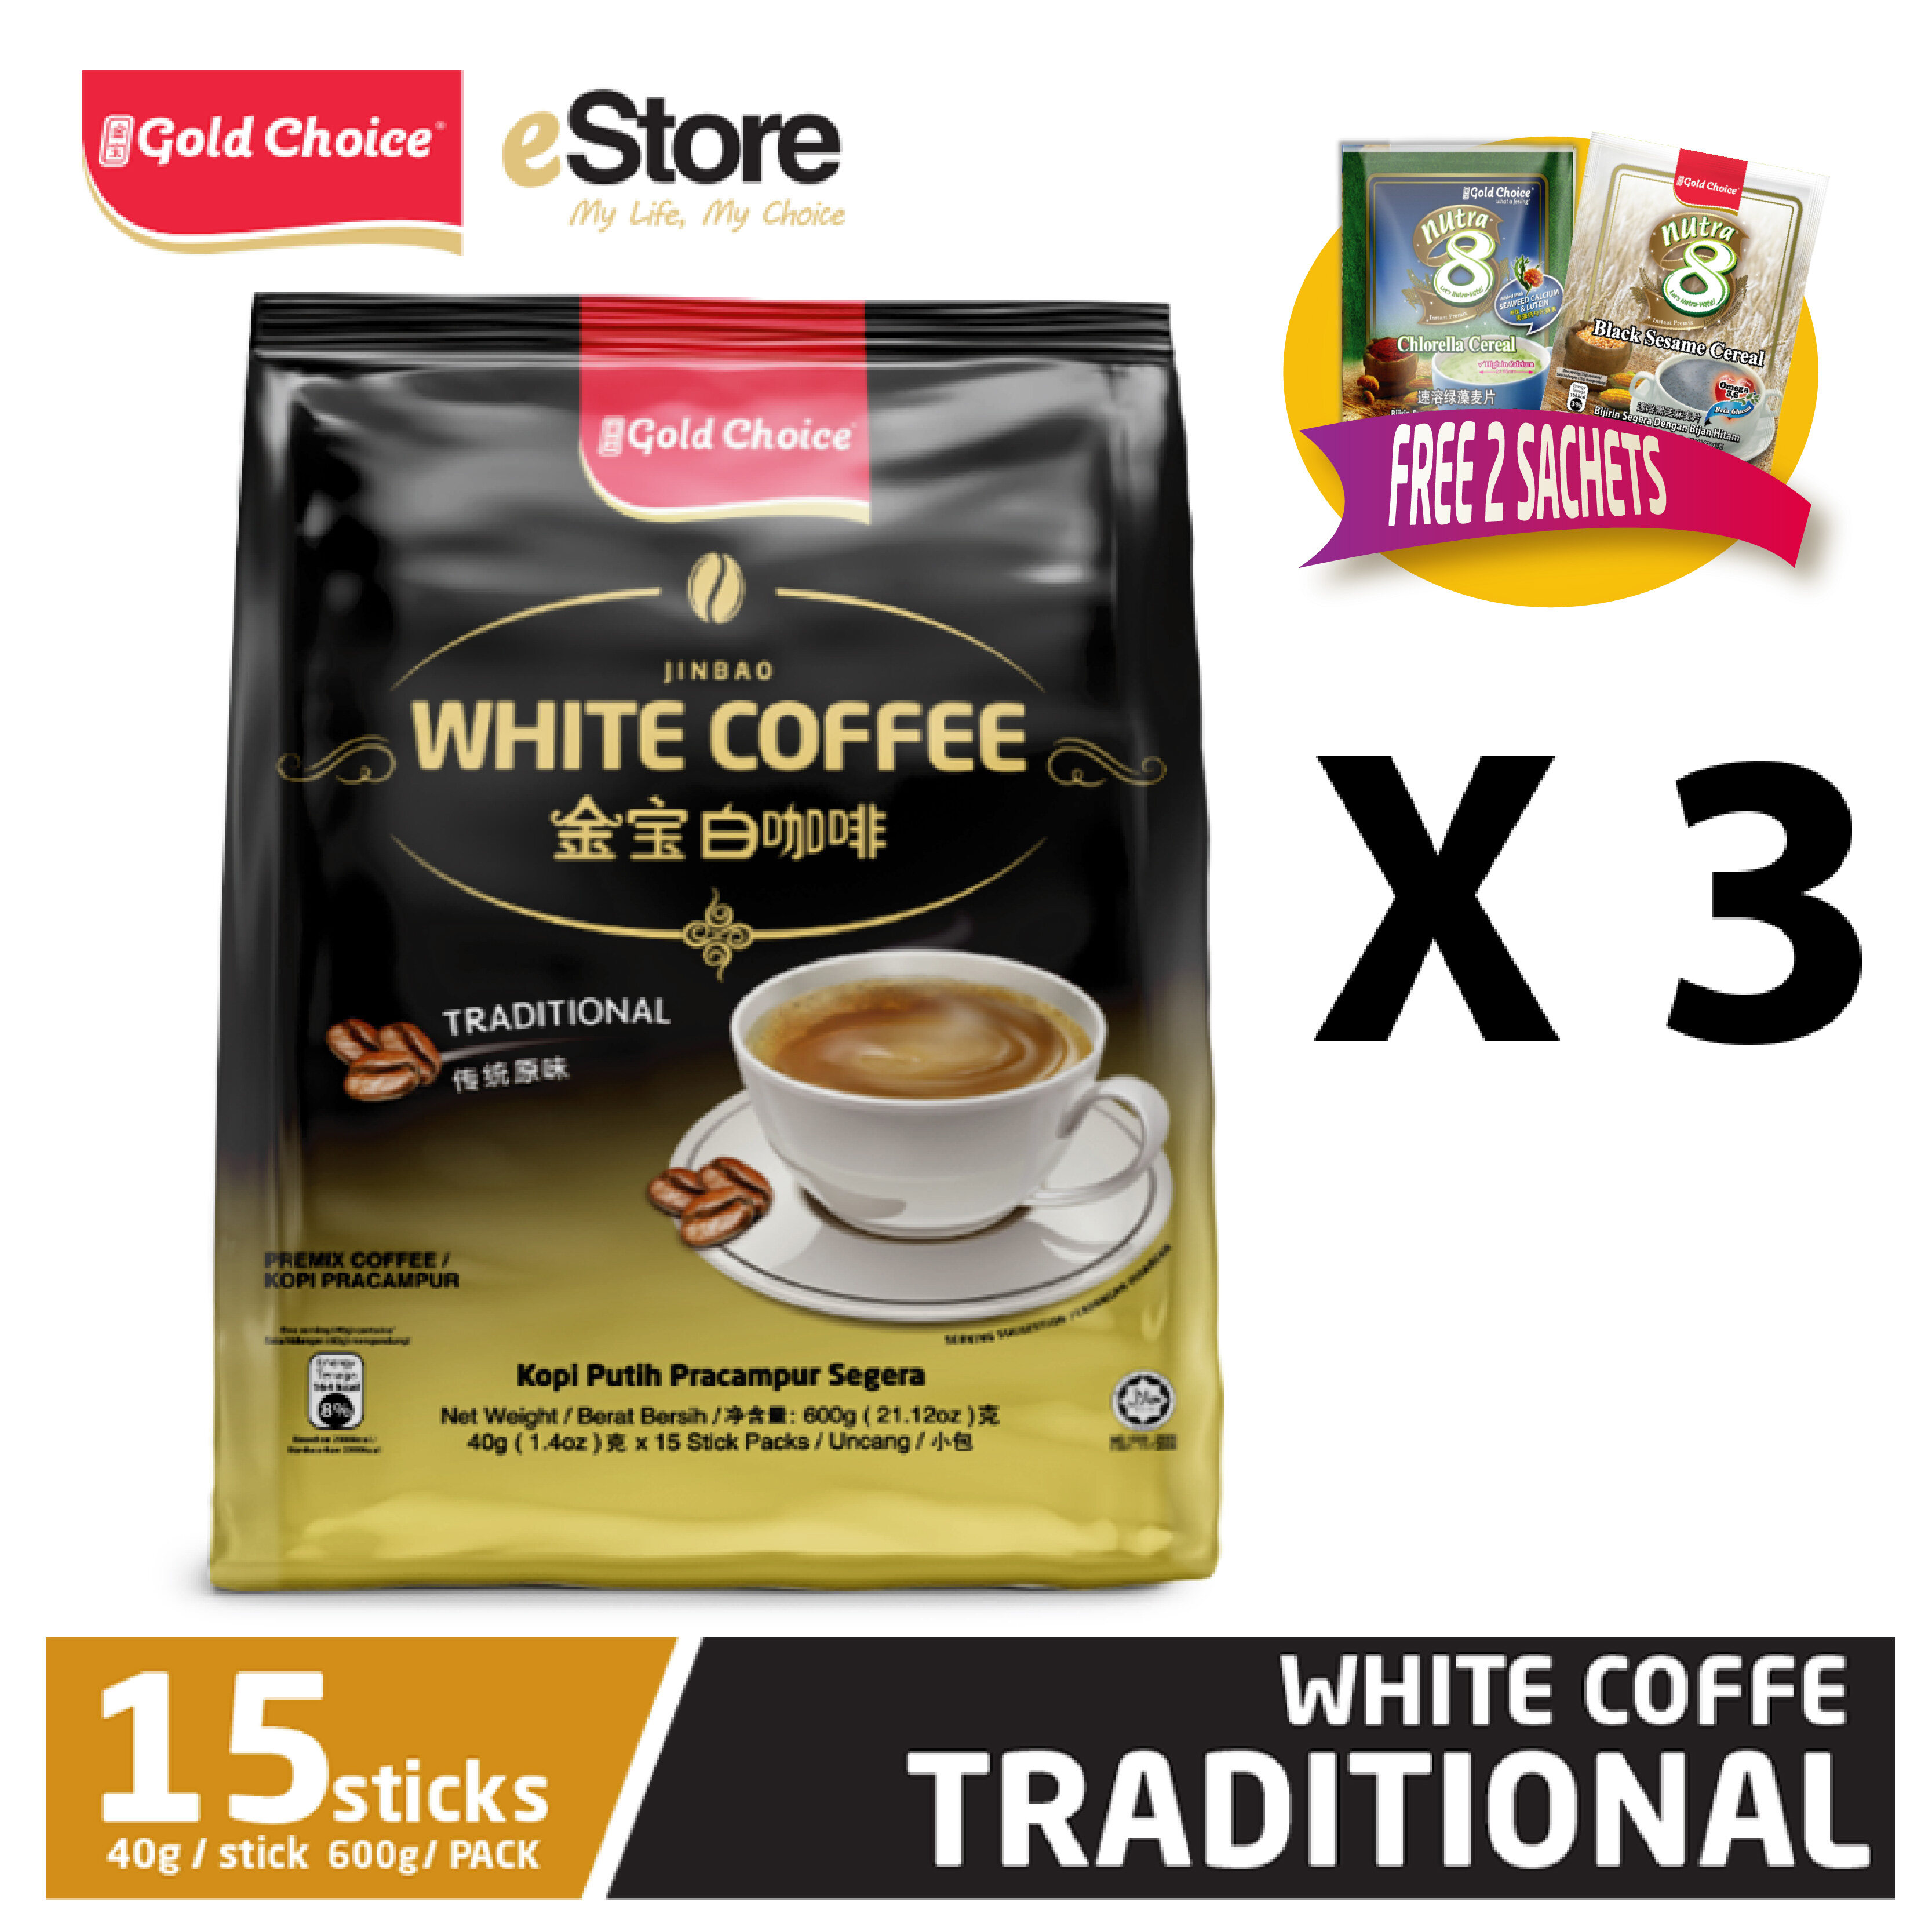 GOLD CHOICE JINBAO White Coffee Traditional - (40g X 15'S) X 3 Packs In Bundle [Classic] [2 FREE SACHETS PER PACK]